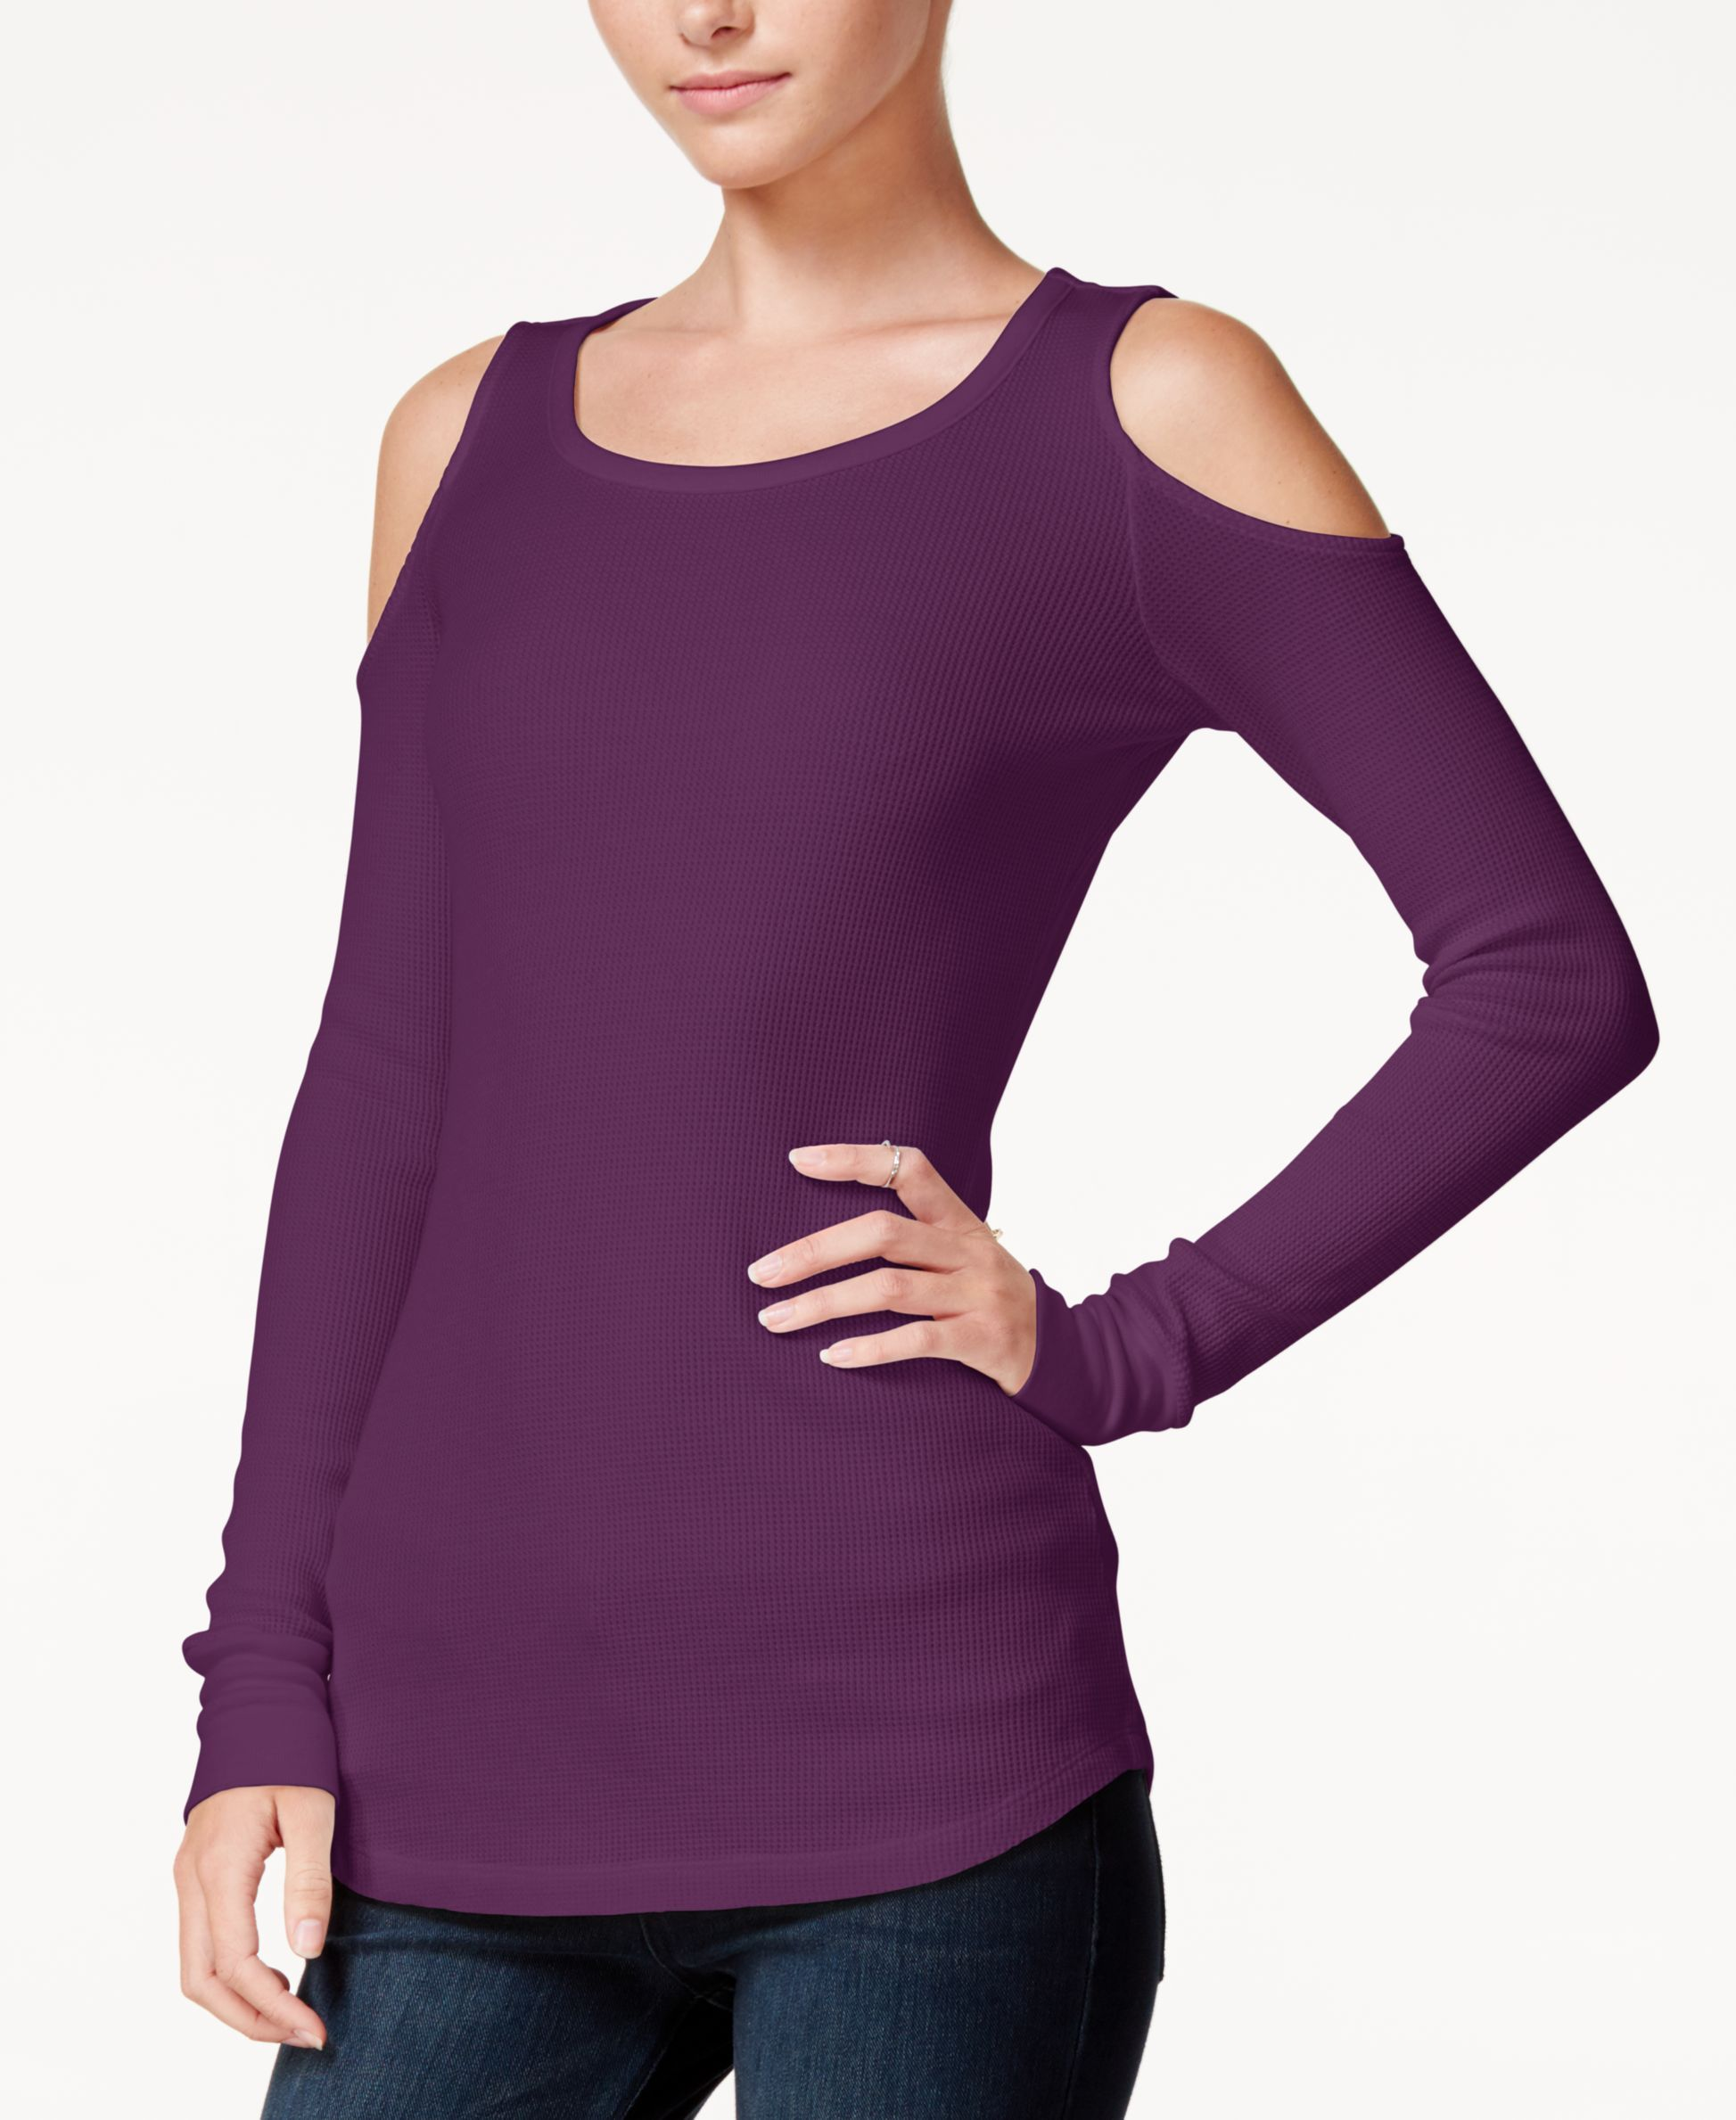 Chelsea Sky Cold-Shoulder Top, Only at Macy's